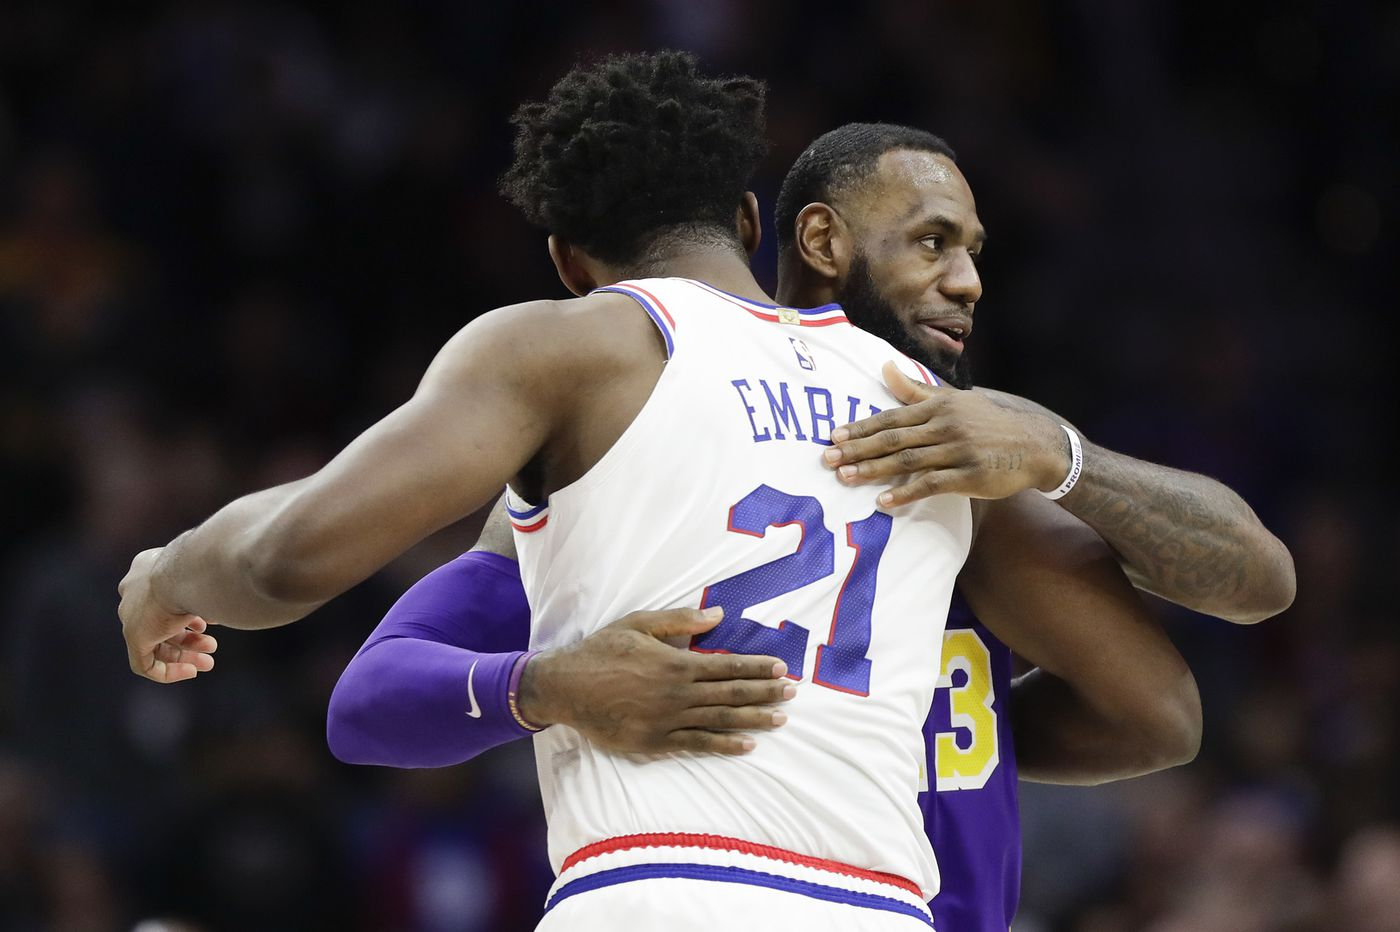 Sixers-Lakers observations: Tobias Harris' presence, Jimmy Butler's role, and lack of defensive communication